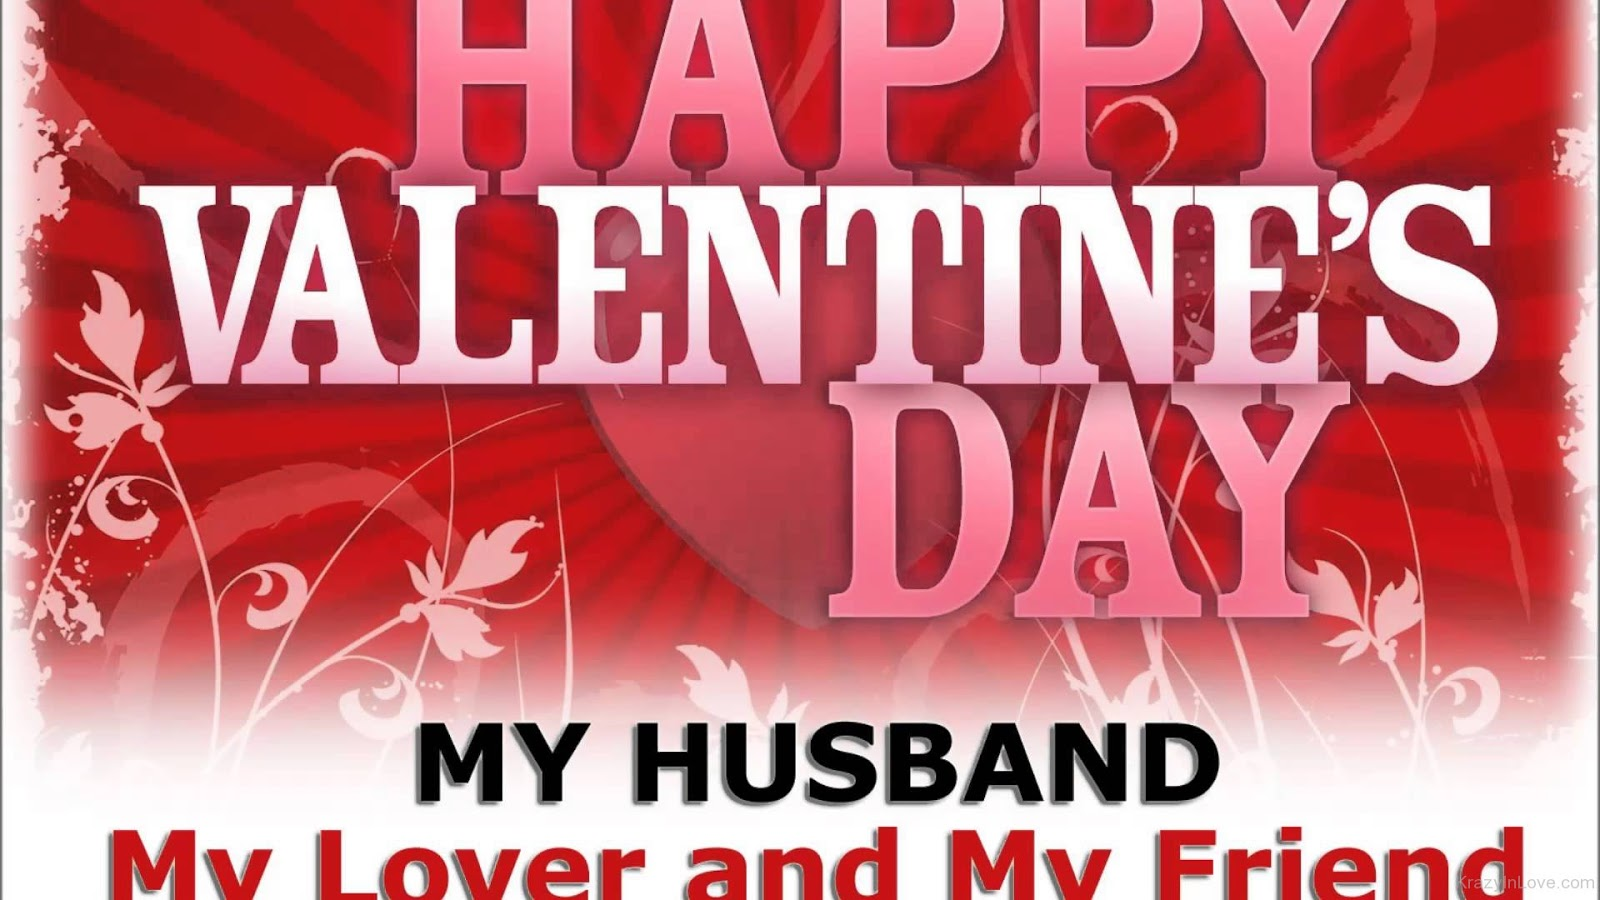 happy valentines day hubby 2018 messages wishes quotes images